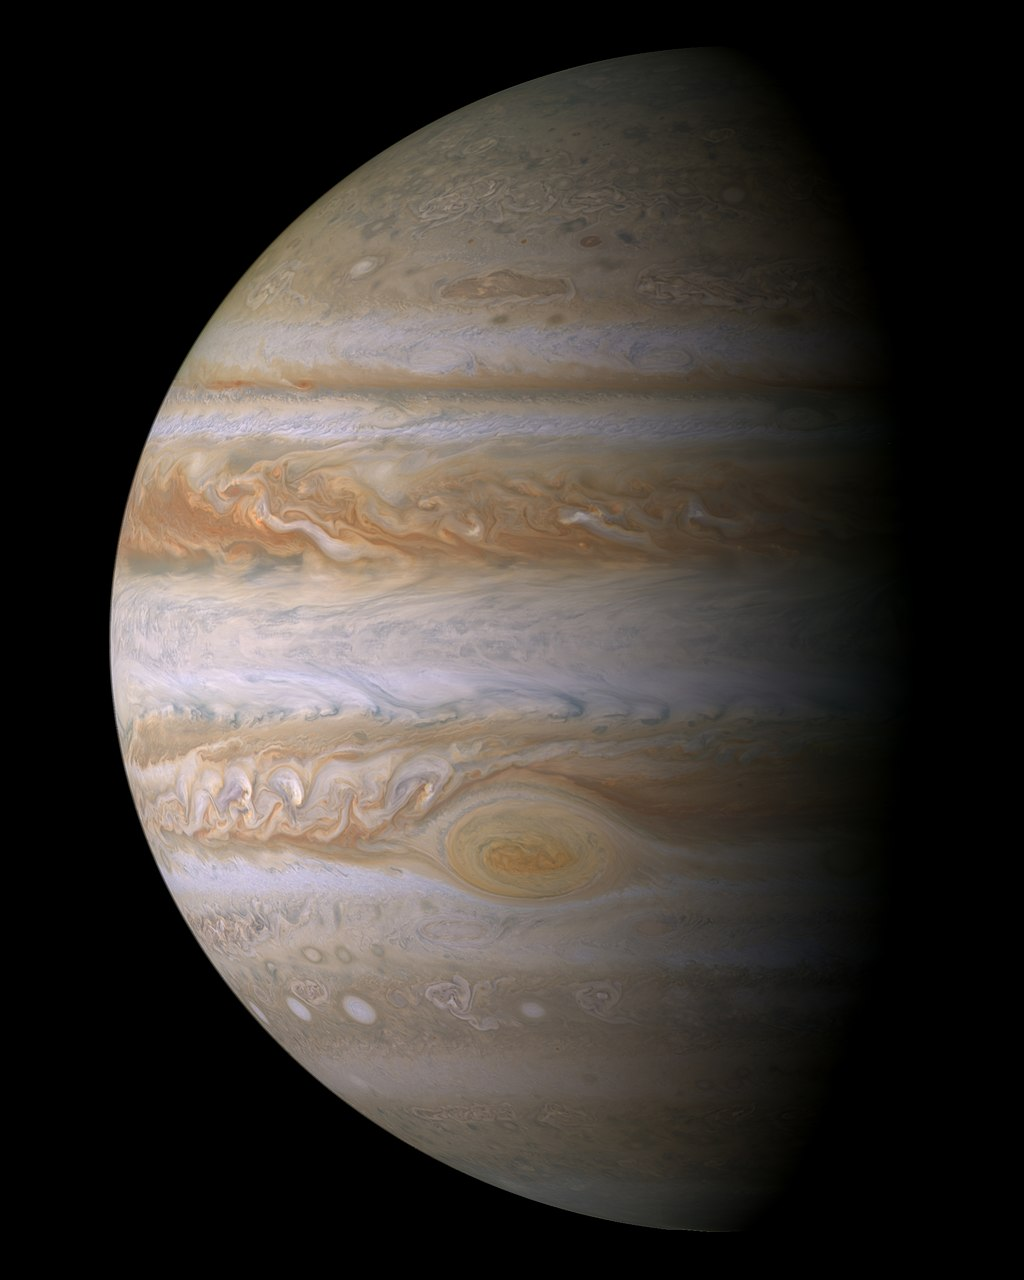 Portrait of Jupiter from Cassini